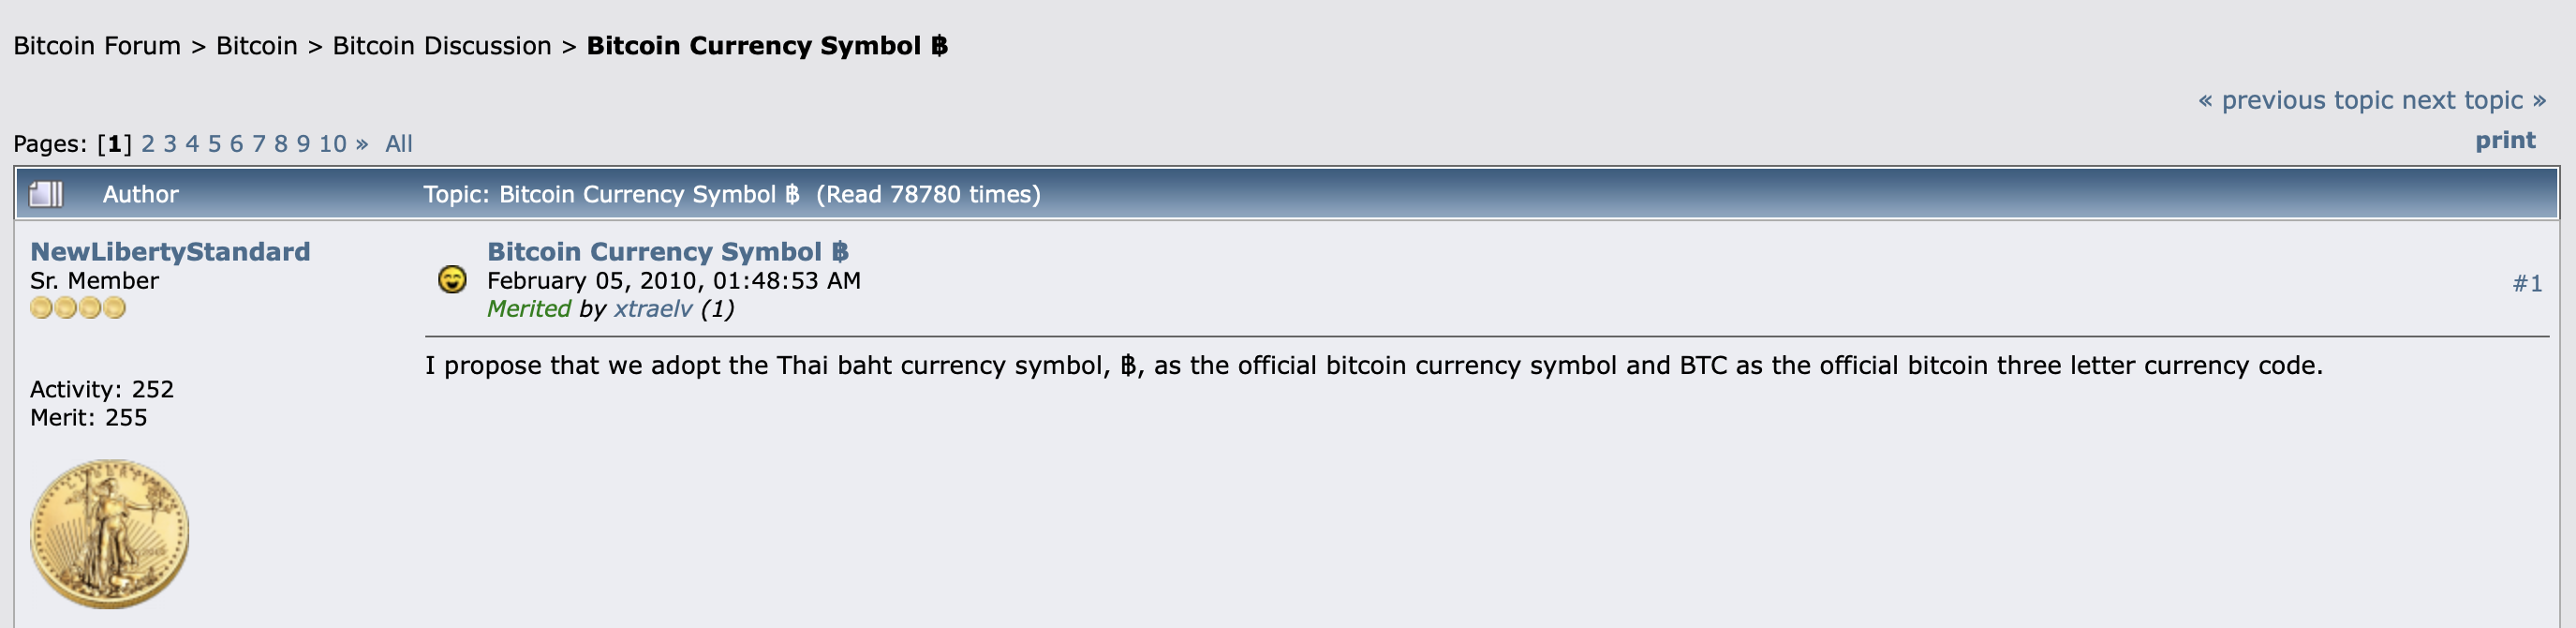 Bitcoins accepted logo creator ezibetting review of systems